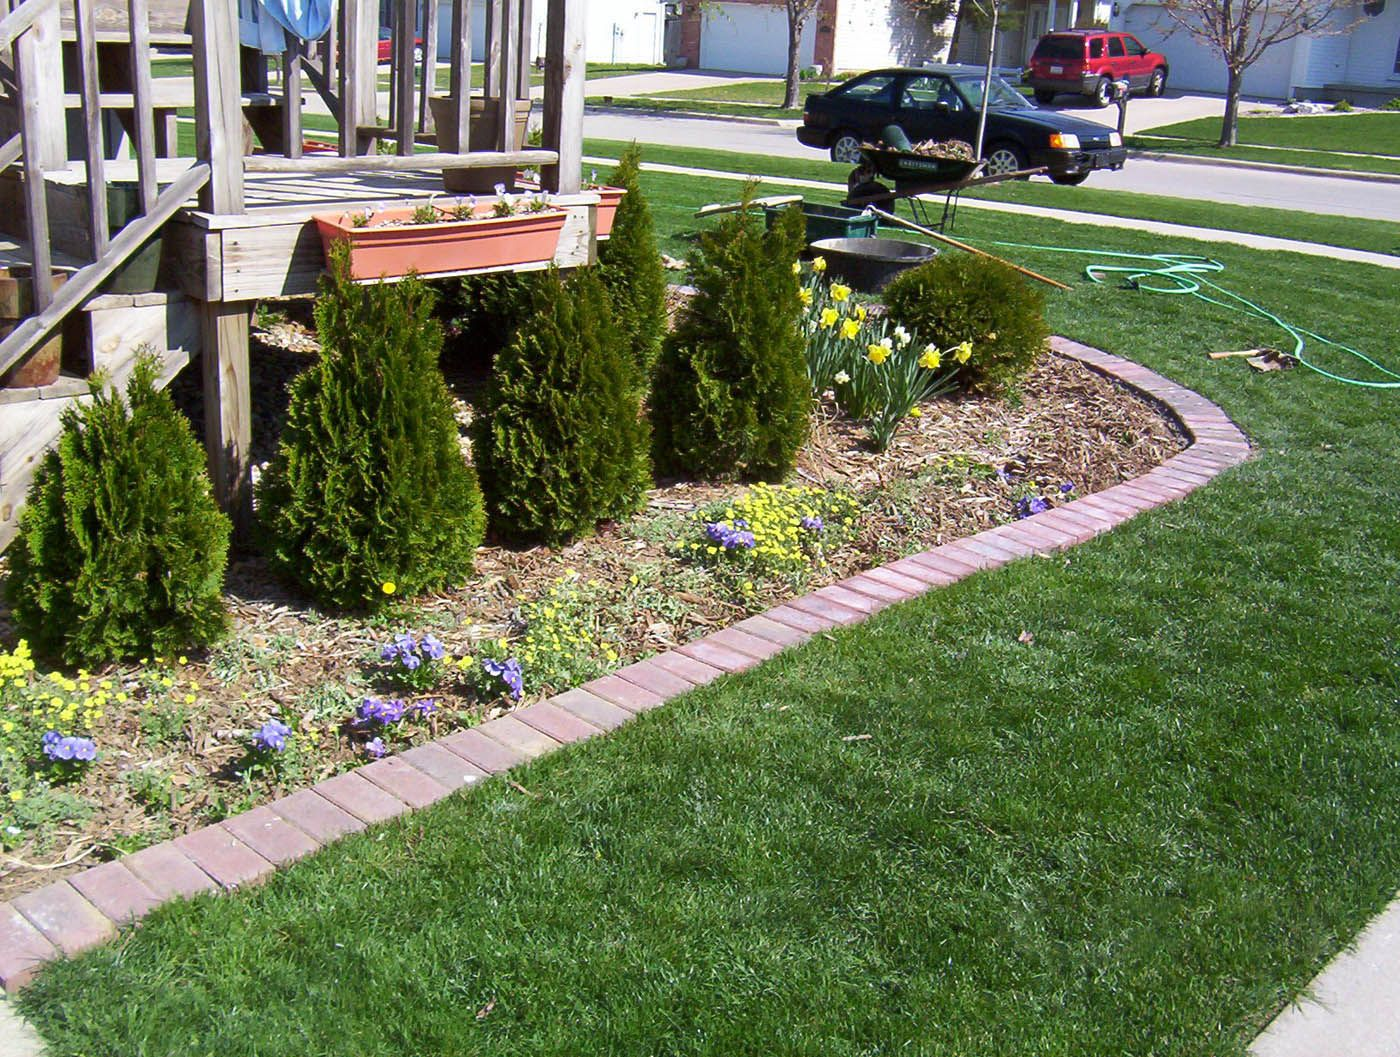 Simple flower bed edging design ideas lawn care for Landscape design flower beds